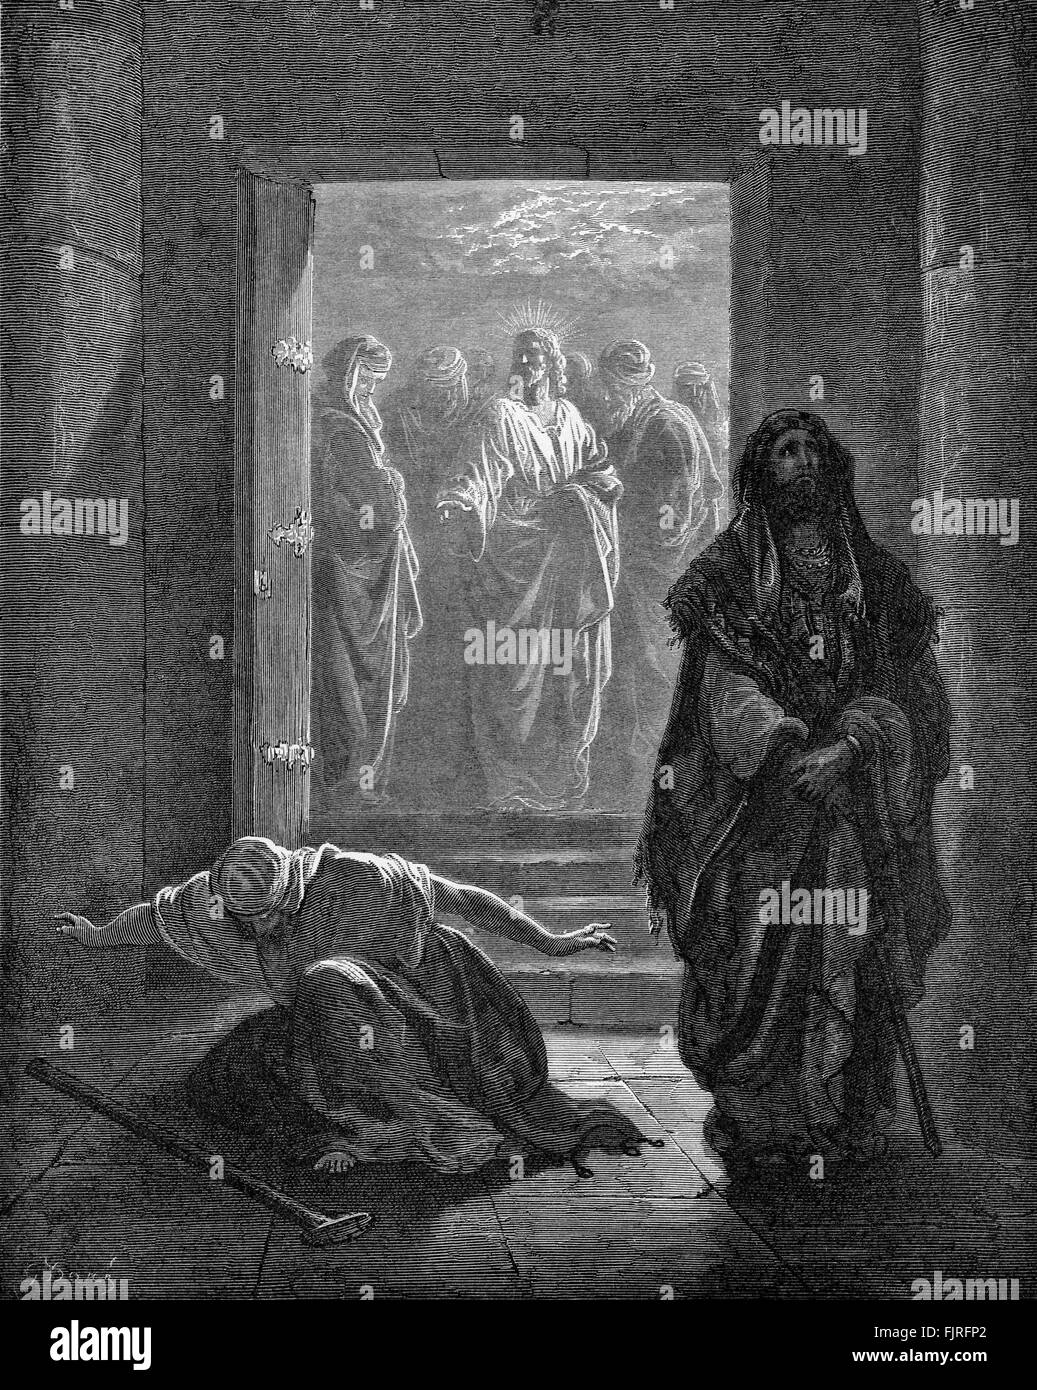 The parable of the pharisee and the publican (Luke chapter XVIII), illustration by Gustave Doré (1832 – 1883) - Stock Image